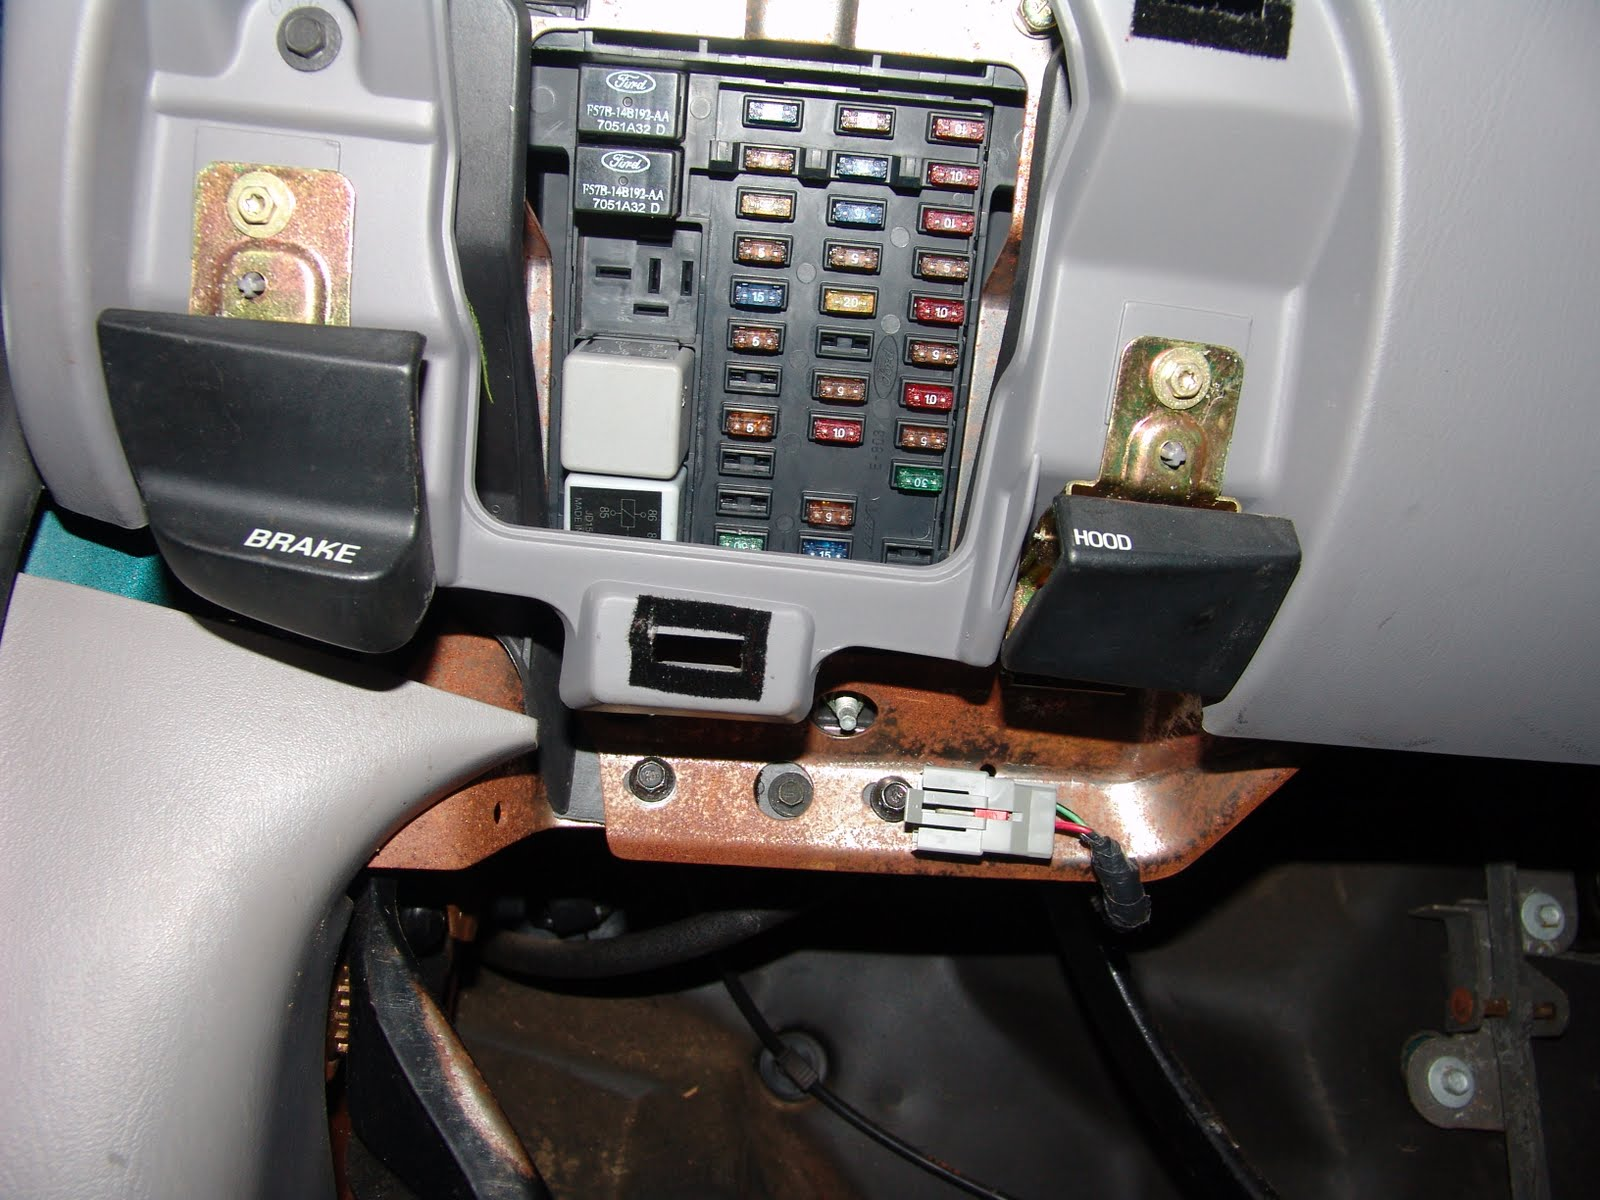 1997 Ford F150  Power Windows Inop